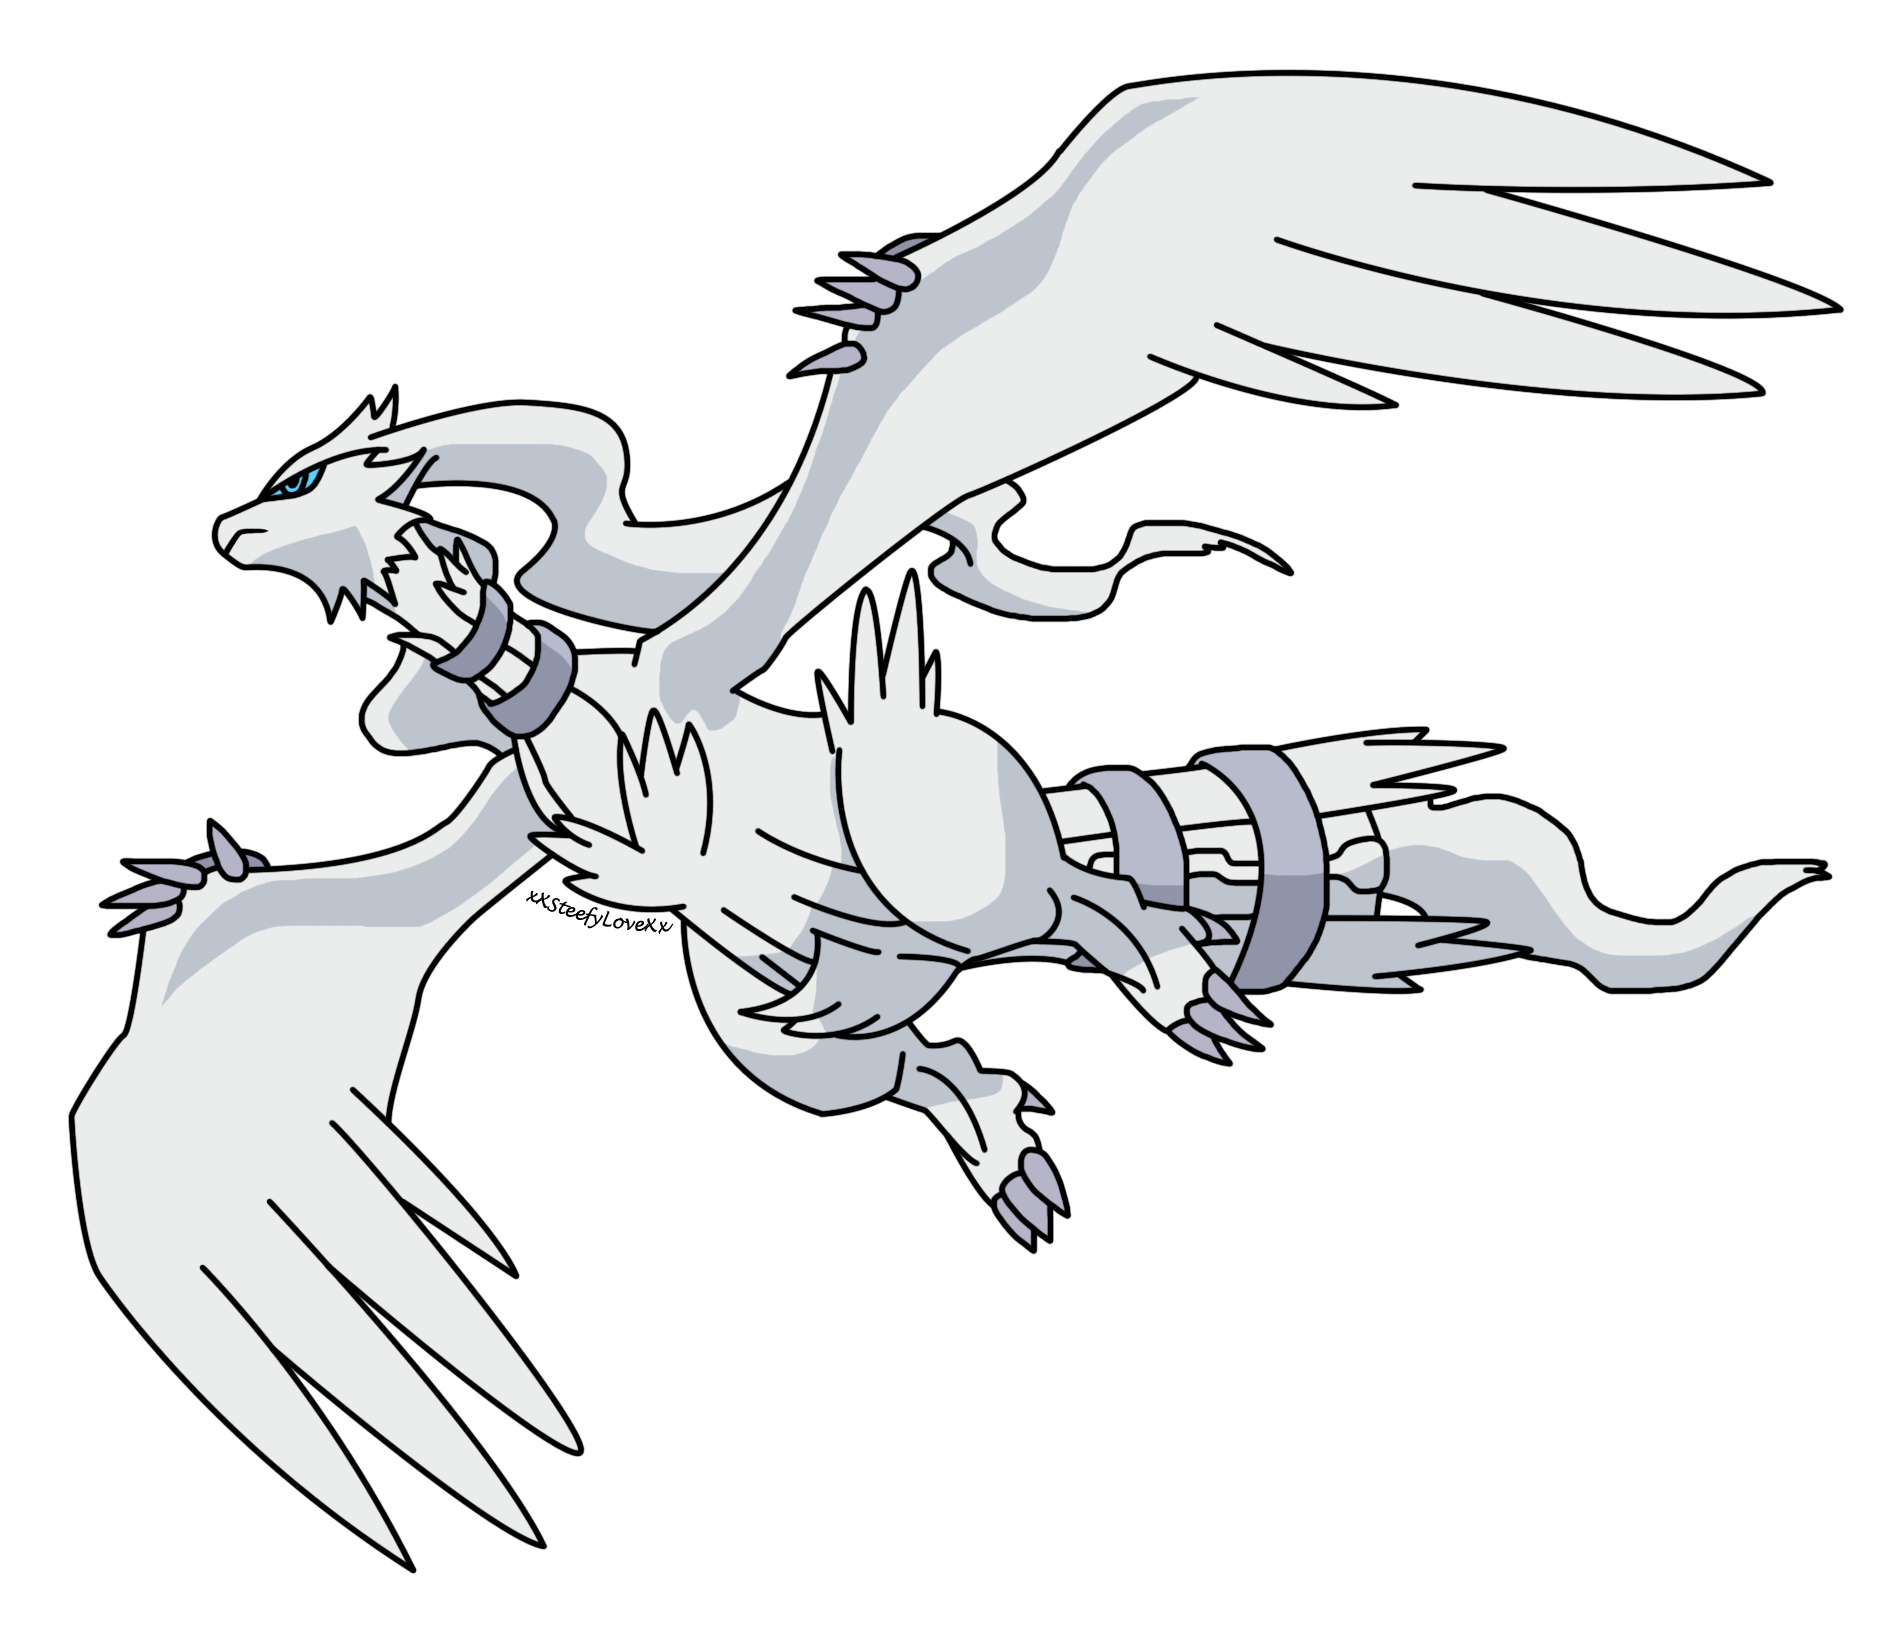 [Image: reshiram__flying_by_xxsteefylovexx-d4rr4nu.png]